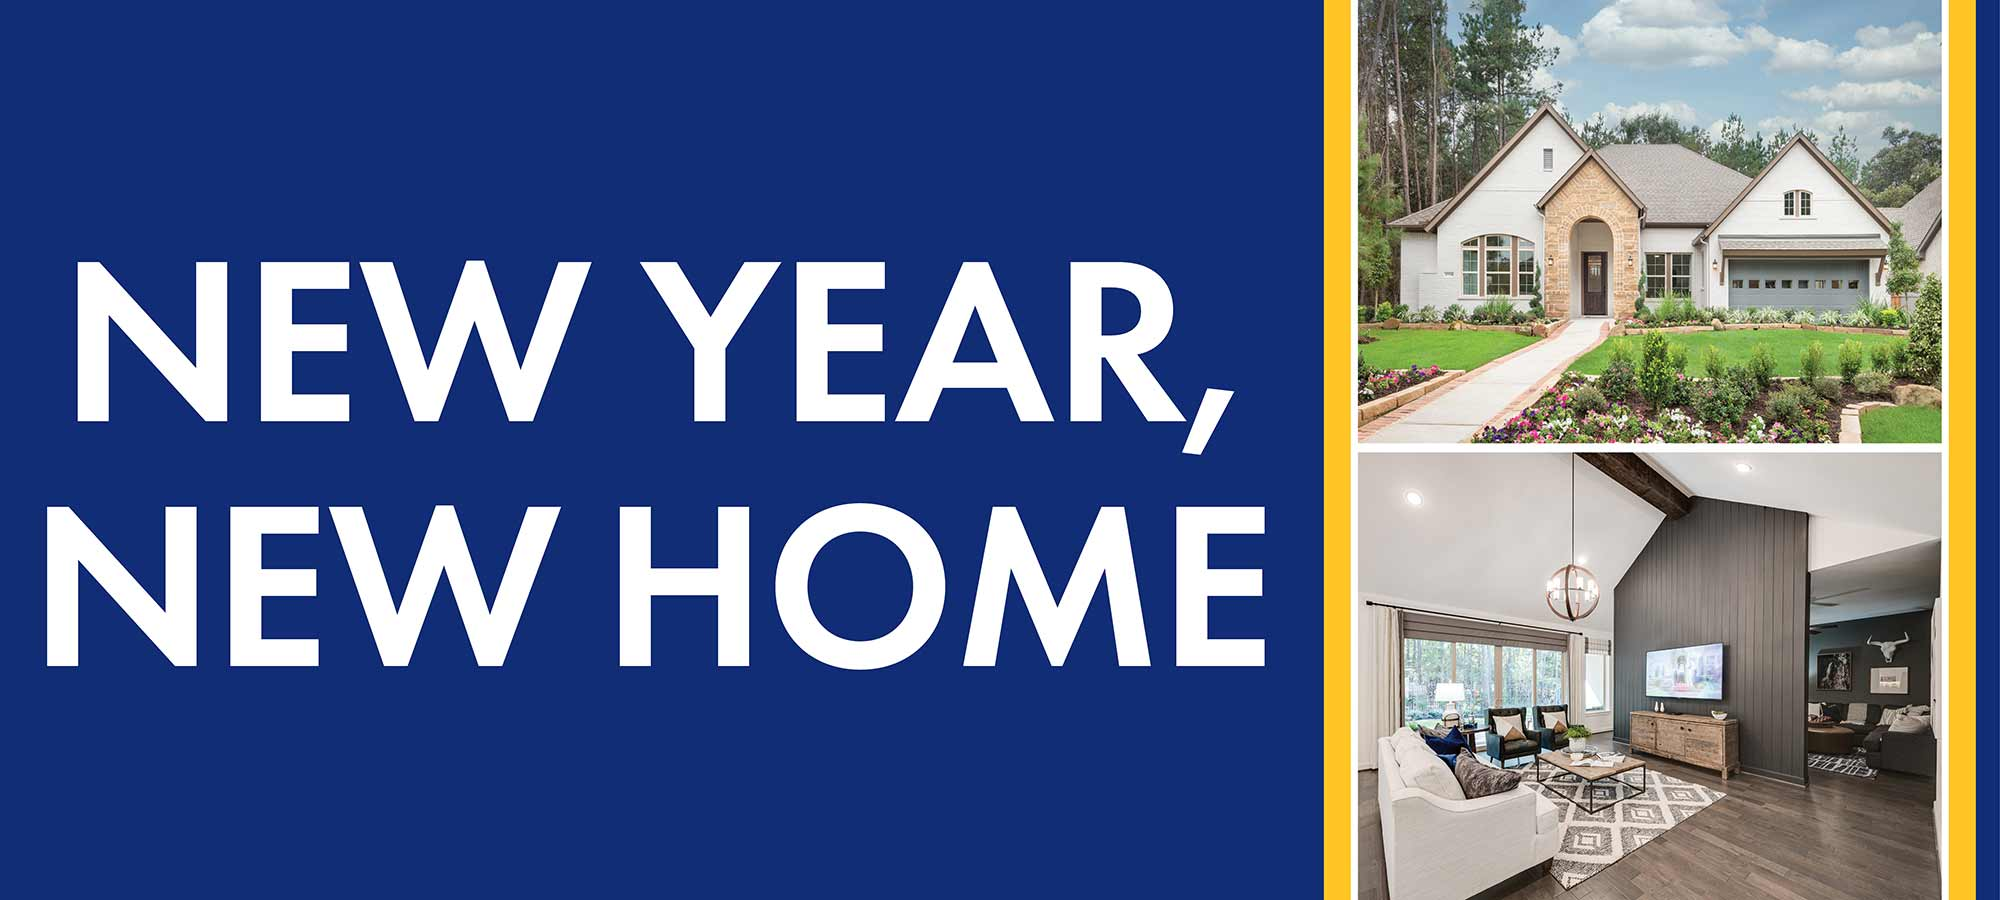 New Year, New Home in Houston!